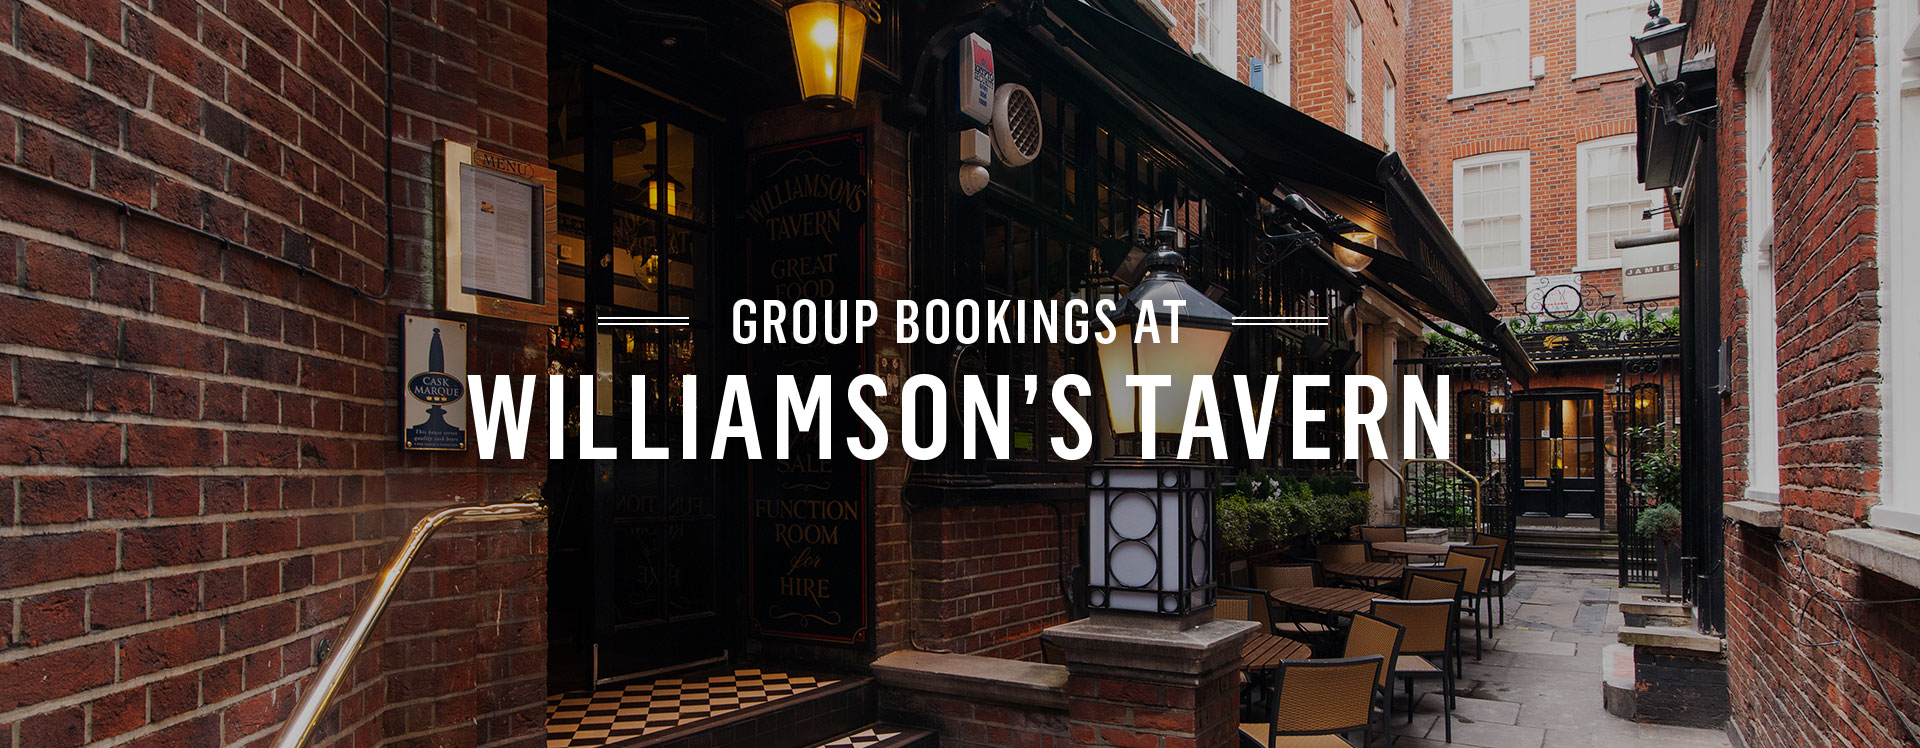 Group Bookings at Williamson's Tavern